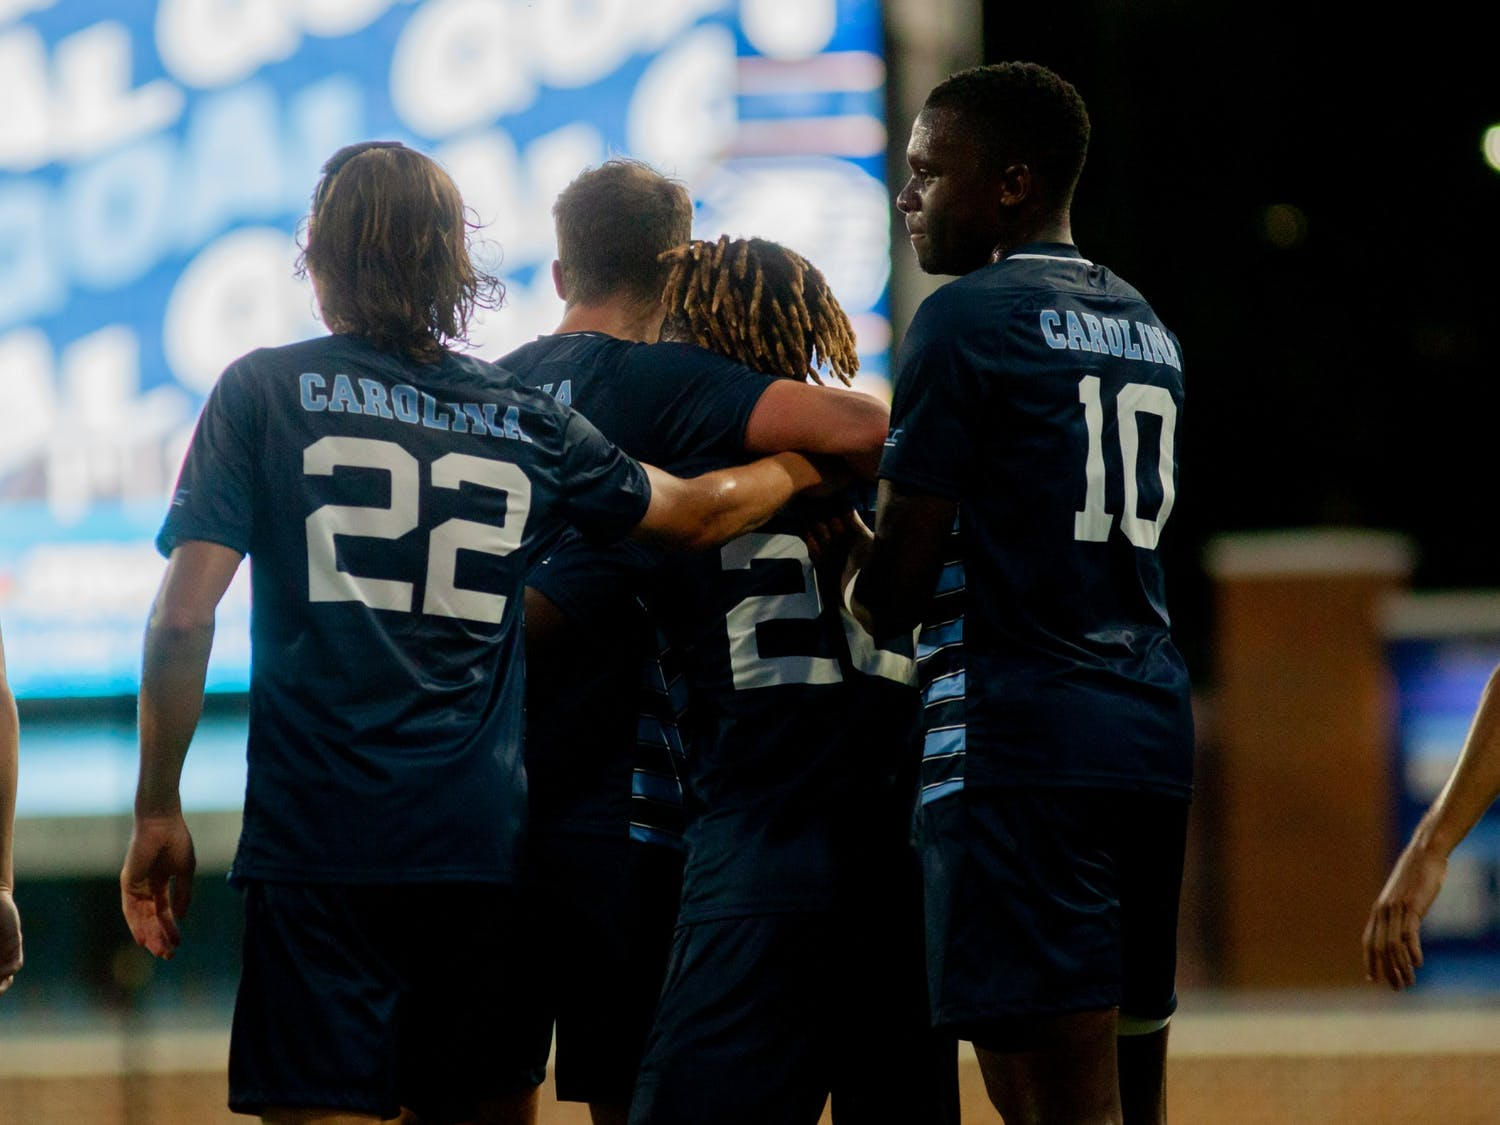 The UNC Tar Heels embrace after junior midfielder Cameron Fisher (17) scores the third goal of the game with an assist from midfielder/forward Ernest Bawa (20). The Tar Heels beat the Georgia Southern Eagles 3-0 at Dorrance Field on Sept. 3.